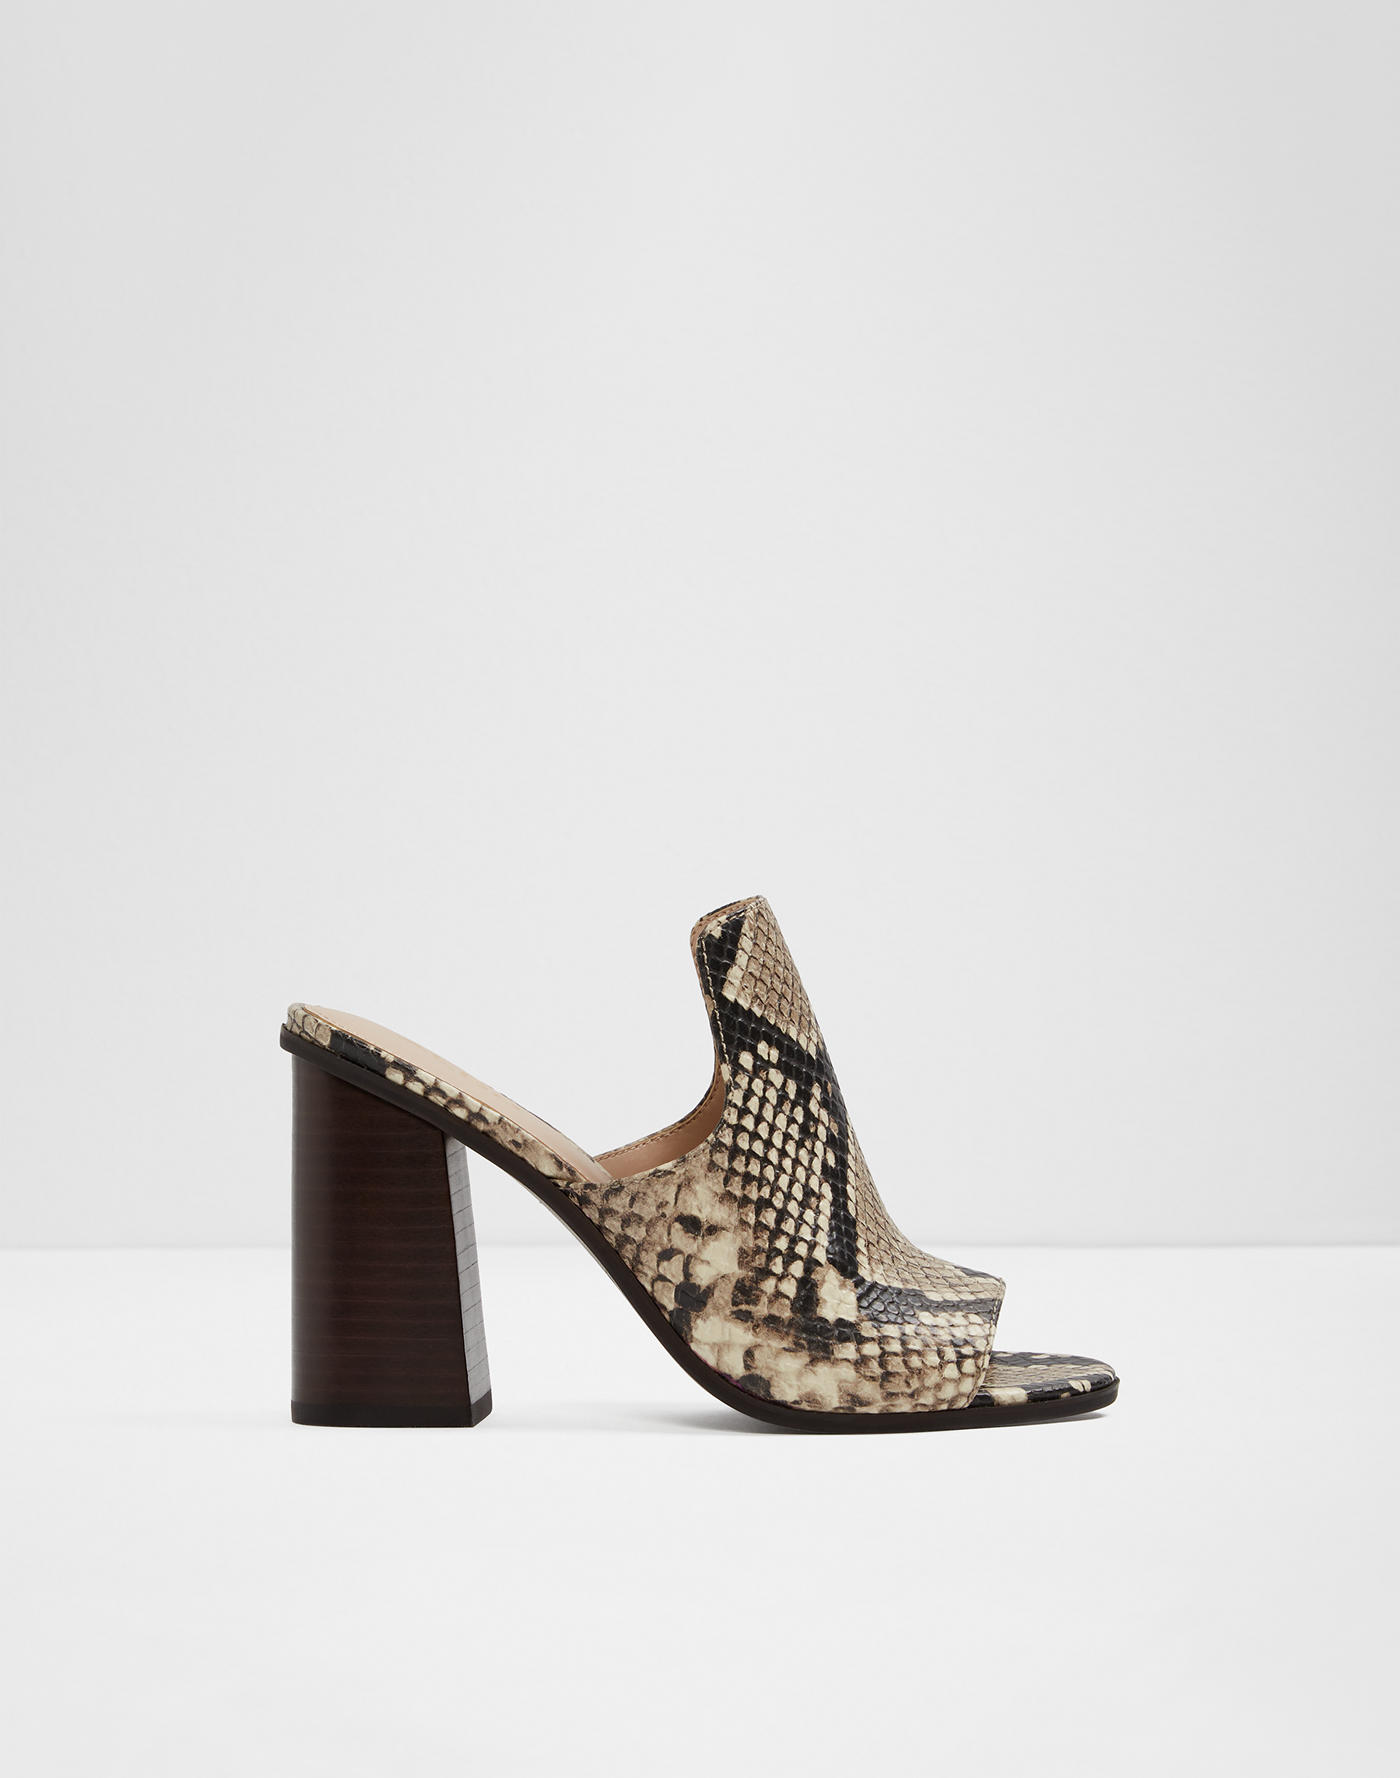 ea6f56c705d75 Heels For Women | Stilettos & High Heels | ALDO Canada | ALDO Canada